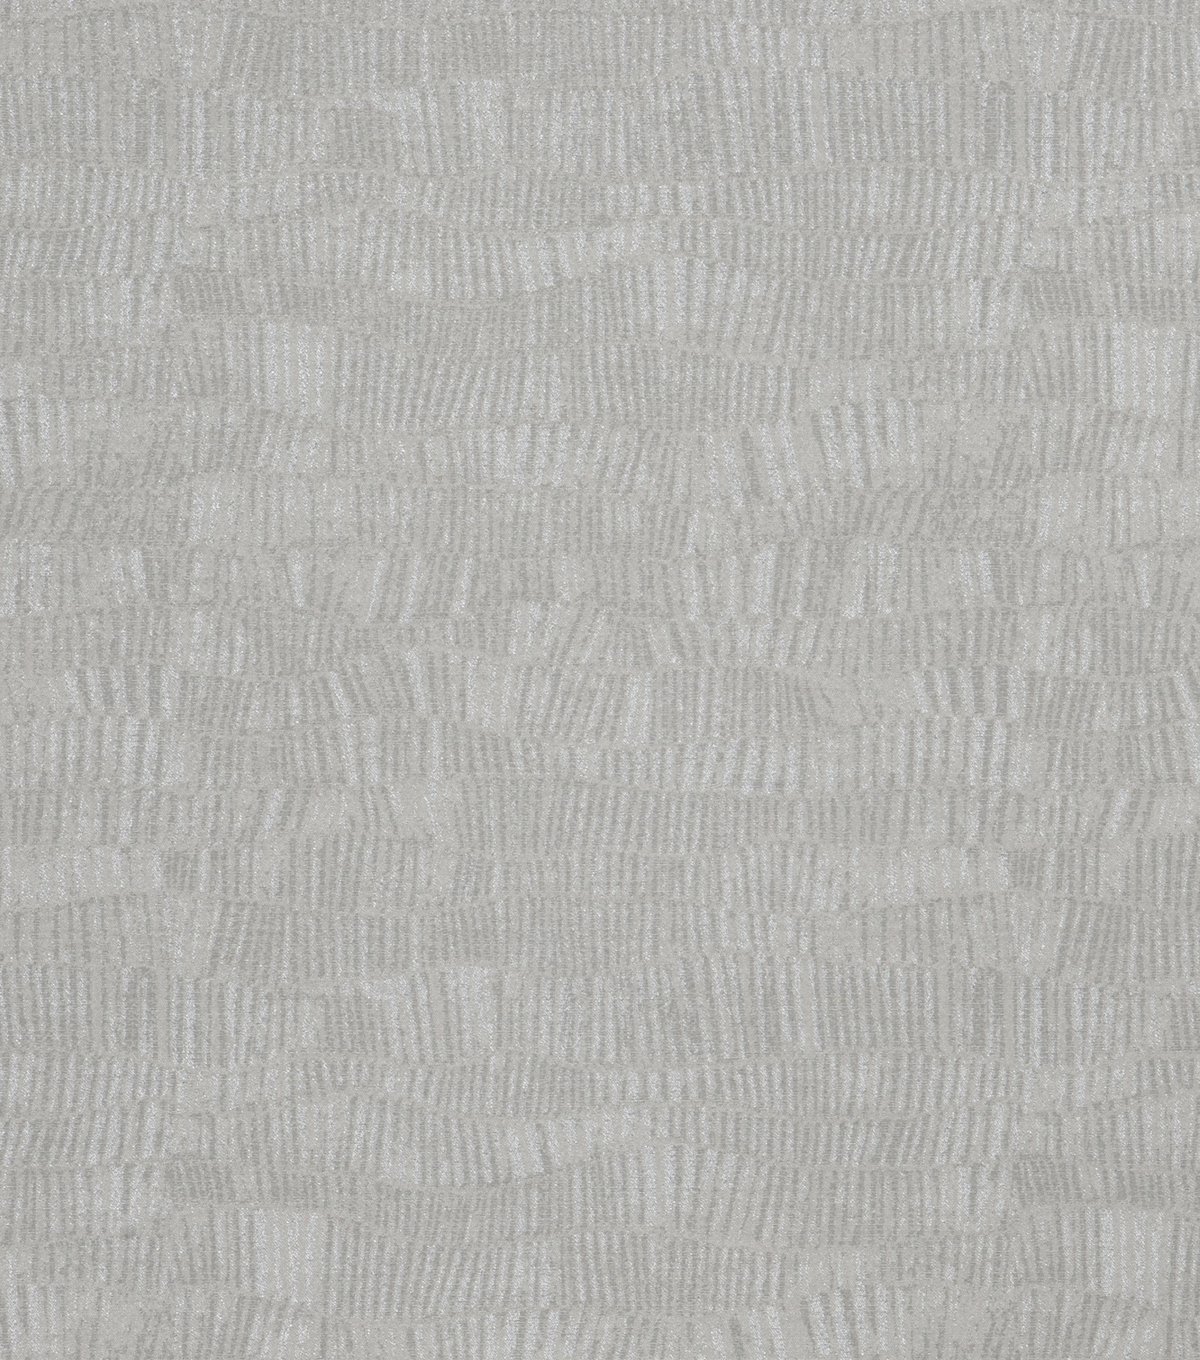 Eaton Square Lightweight Decor Fabric 55\u0022-Release/Silver